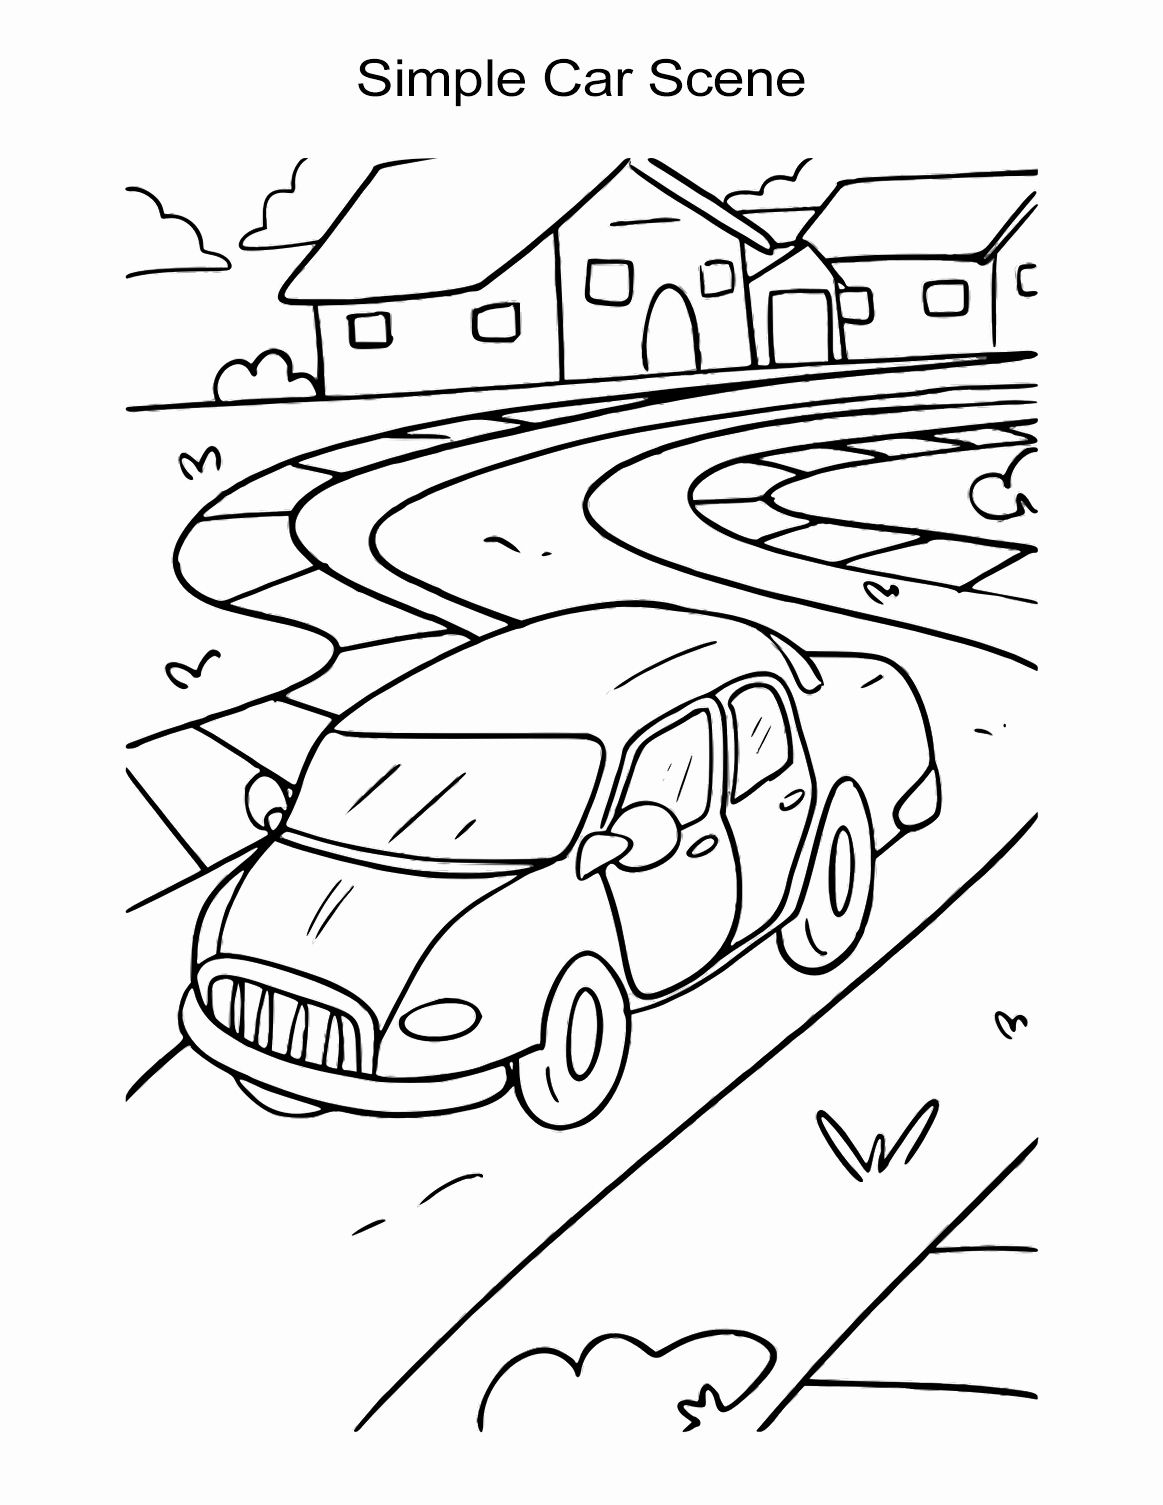 Car Coloring Pages For Toddlers Awesome Coloring Ideas Car Coloring Sheets Sports Muscle Racing In 2020 Race Car Coloring Pages Coloring Pages Cars Coloring Pages